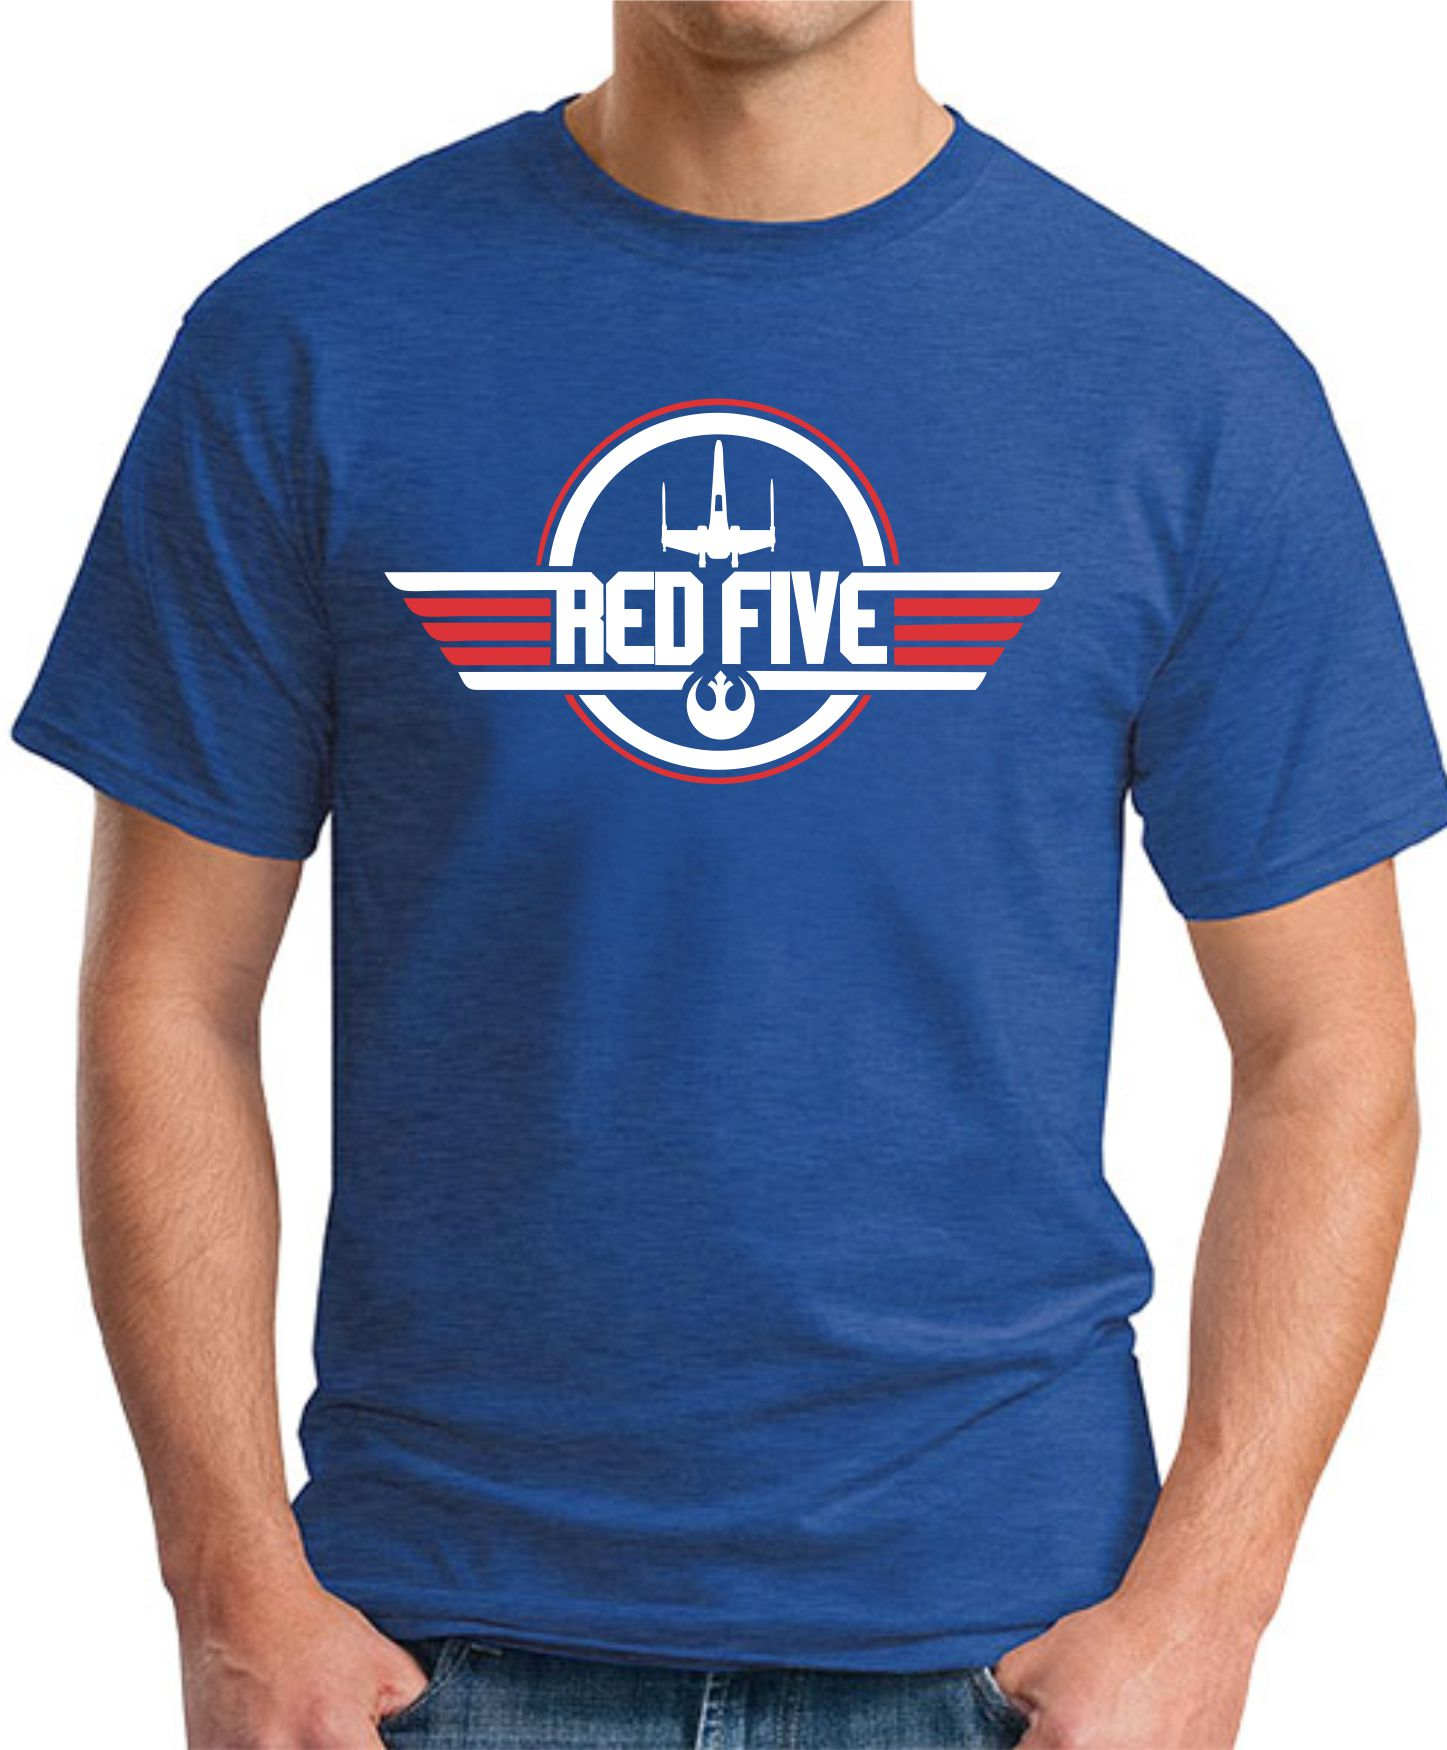 RED FIVE royal blue